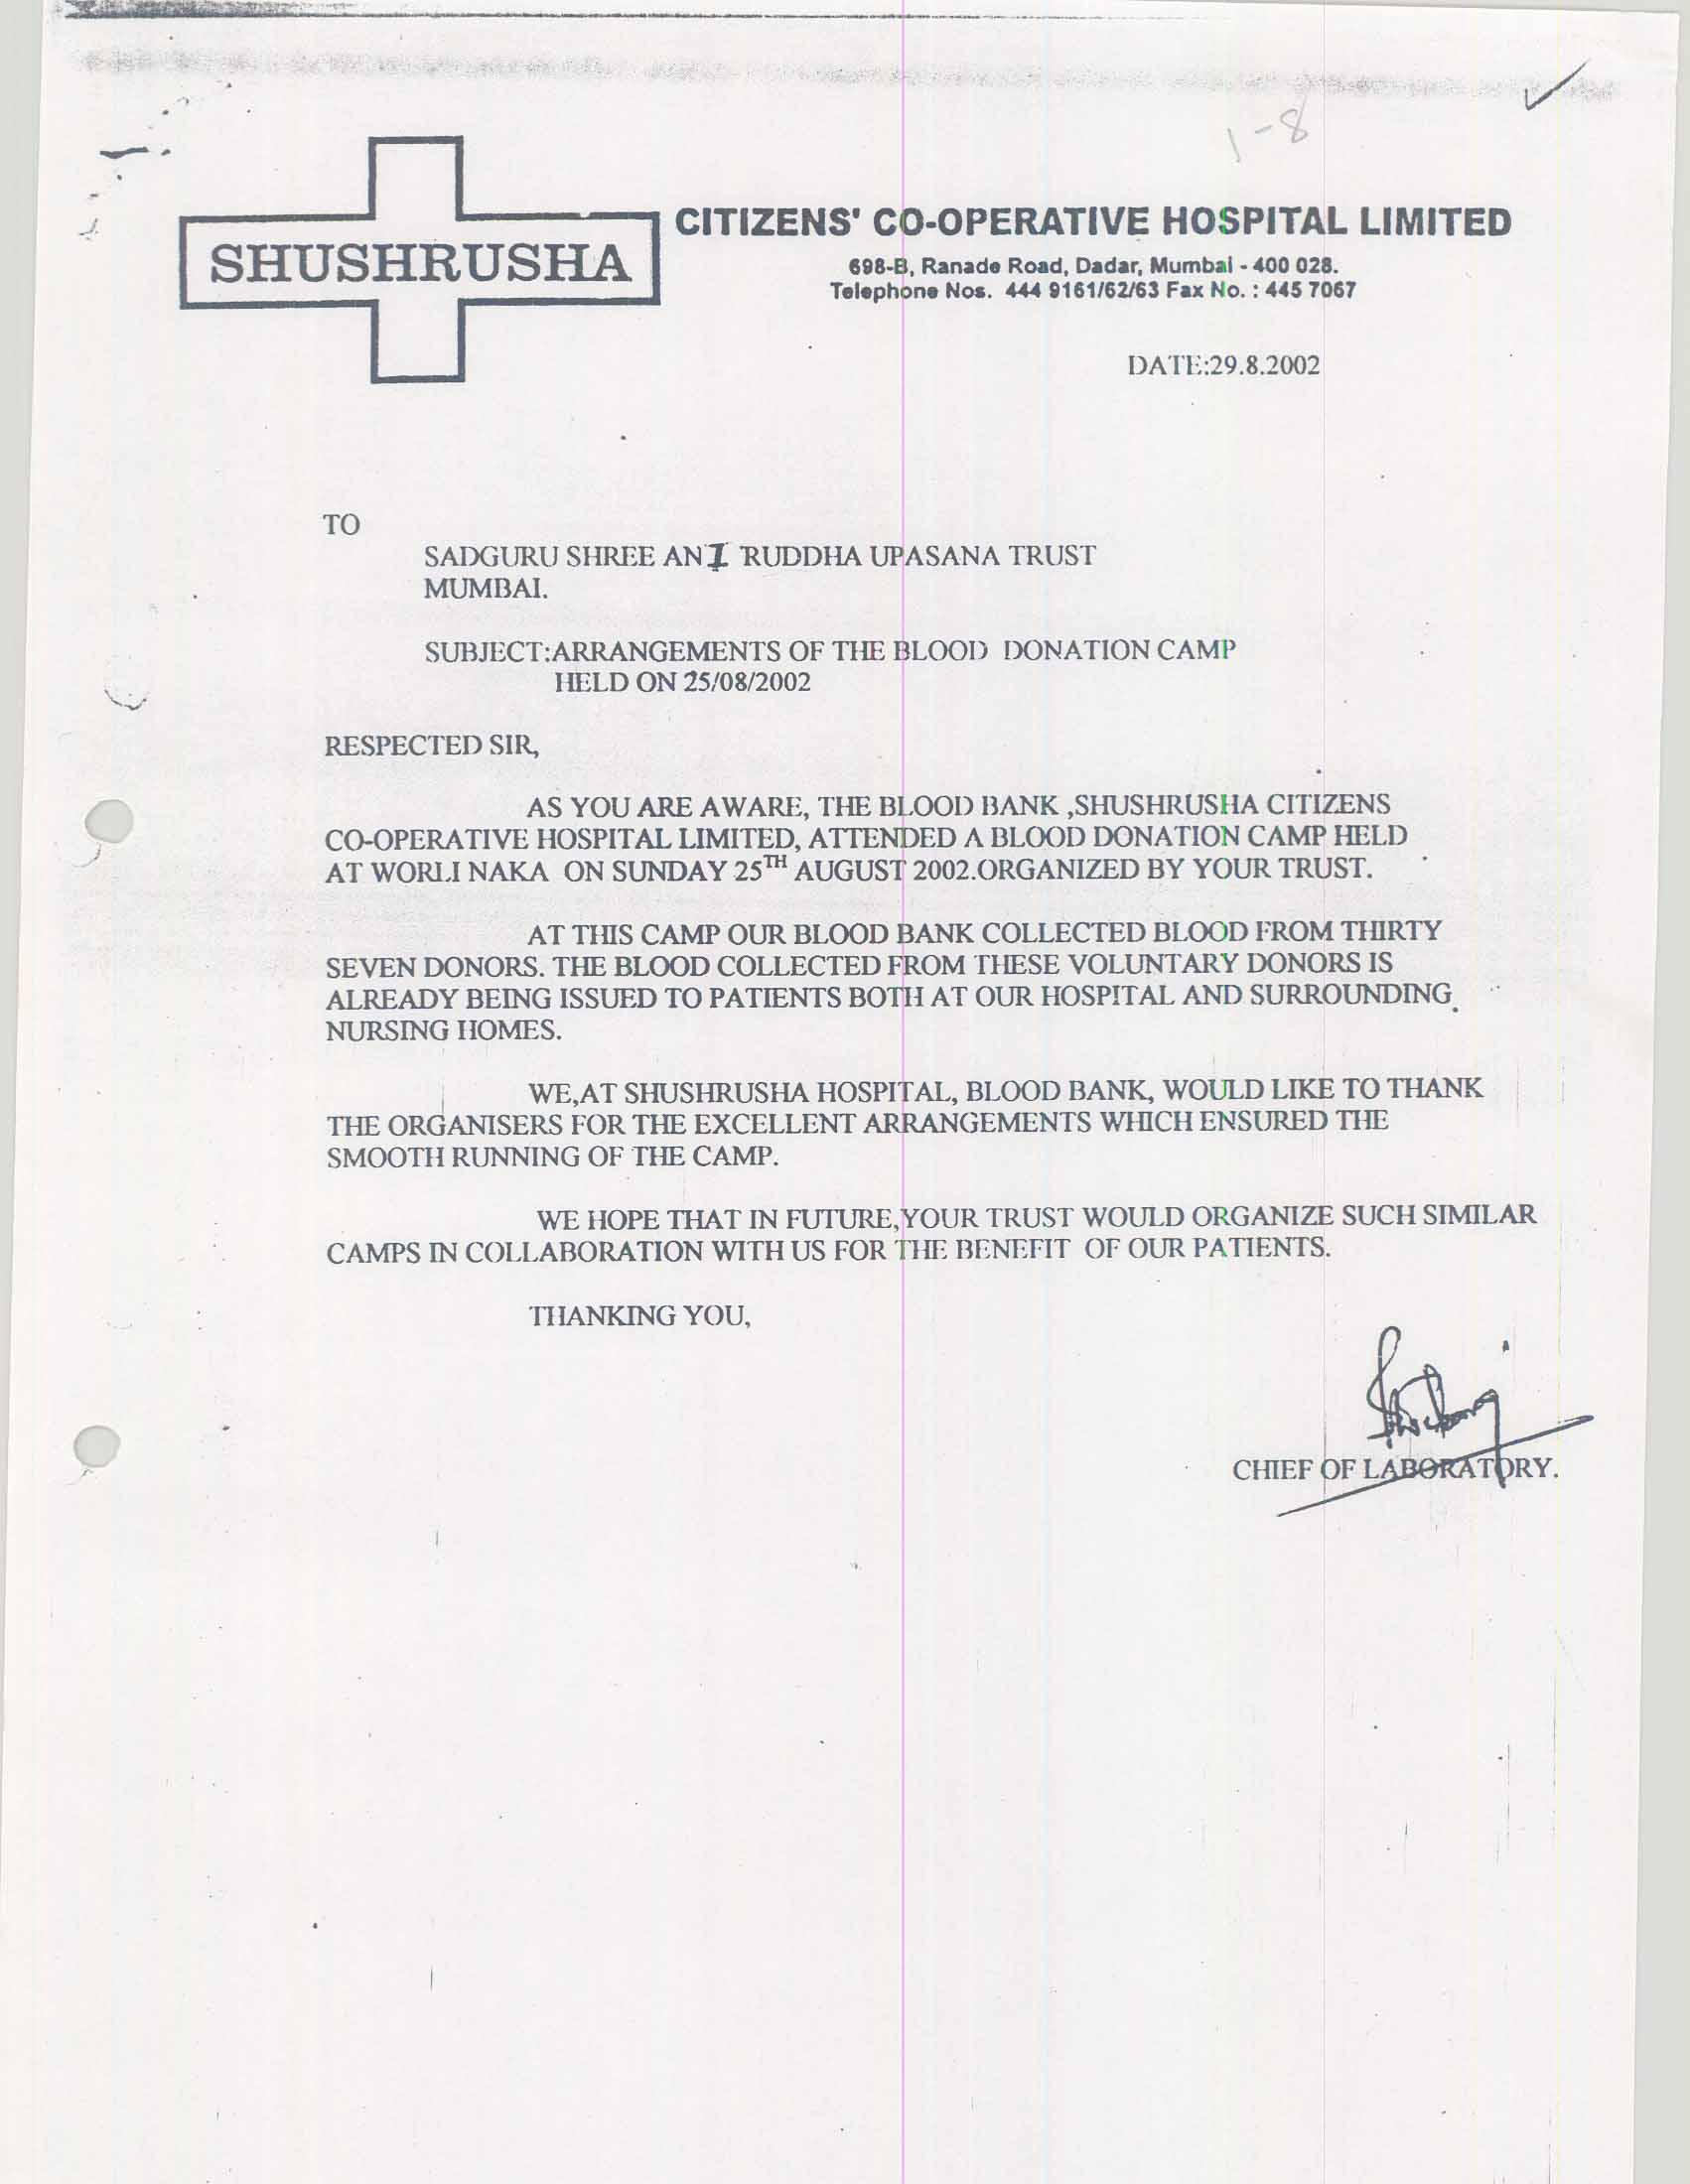 Appreciation-Letter from Citizen Coop Hosptial 2002-for-Aniruddhafoundation-Compassion-Social